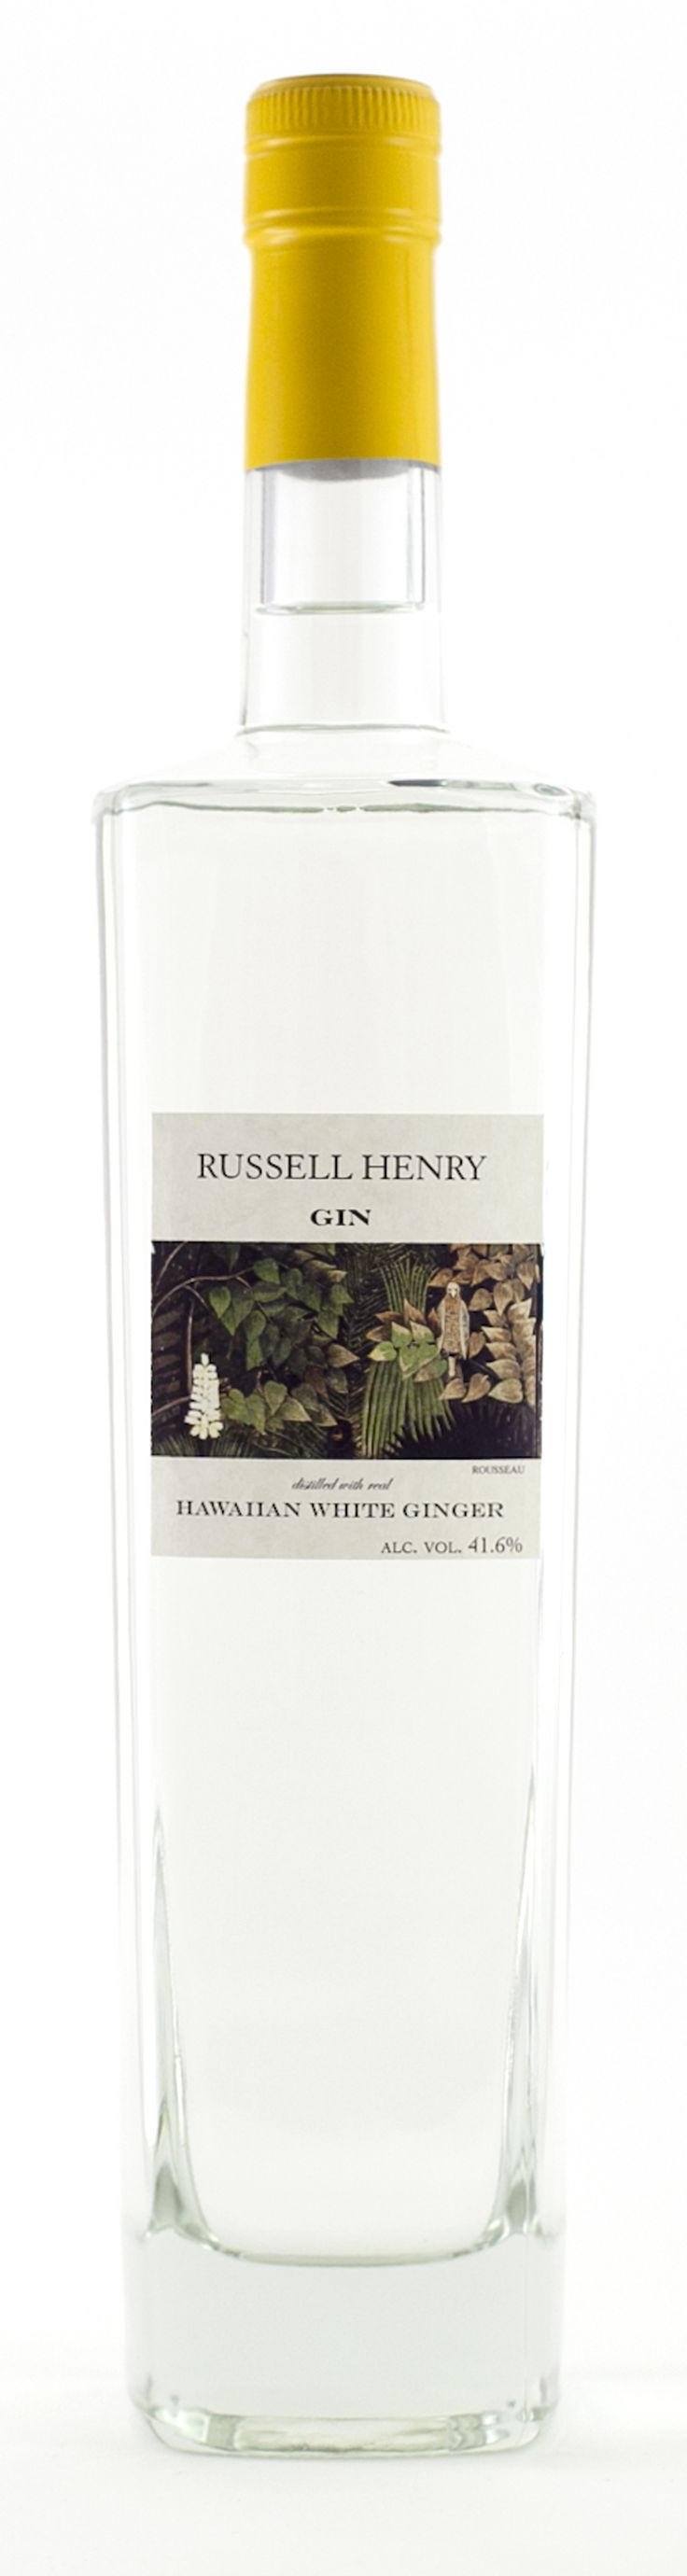 California, RUSSELL HENRY HAWAIIAN GINGER GIN